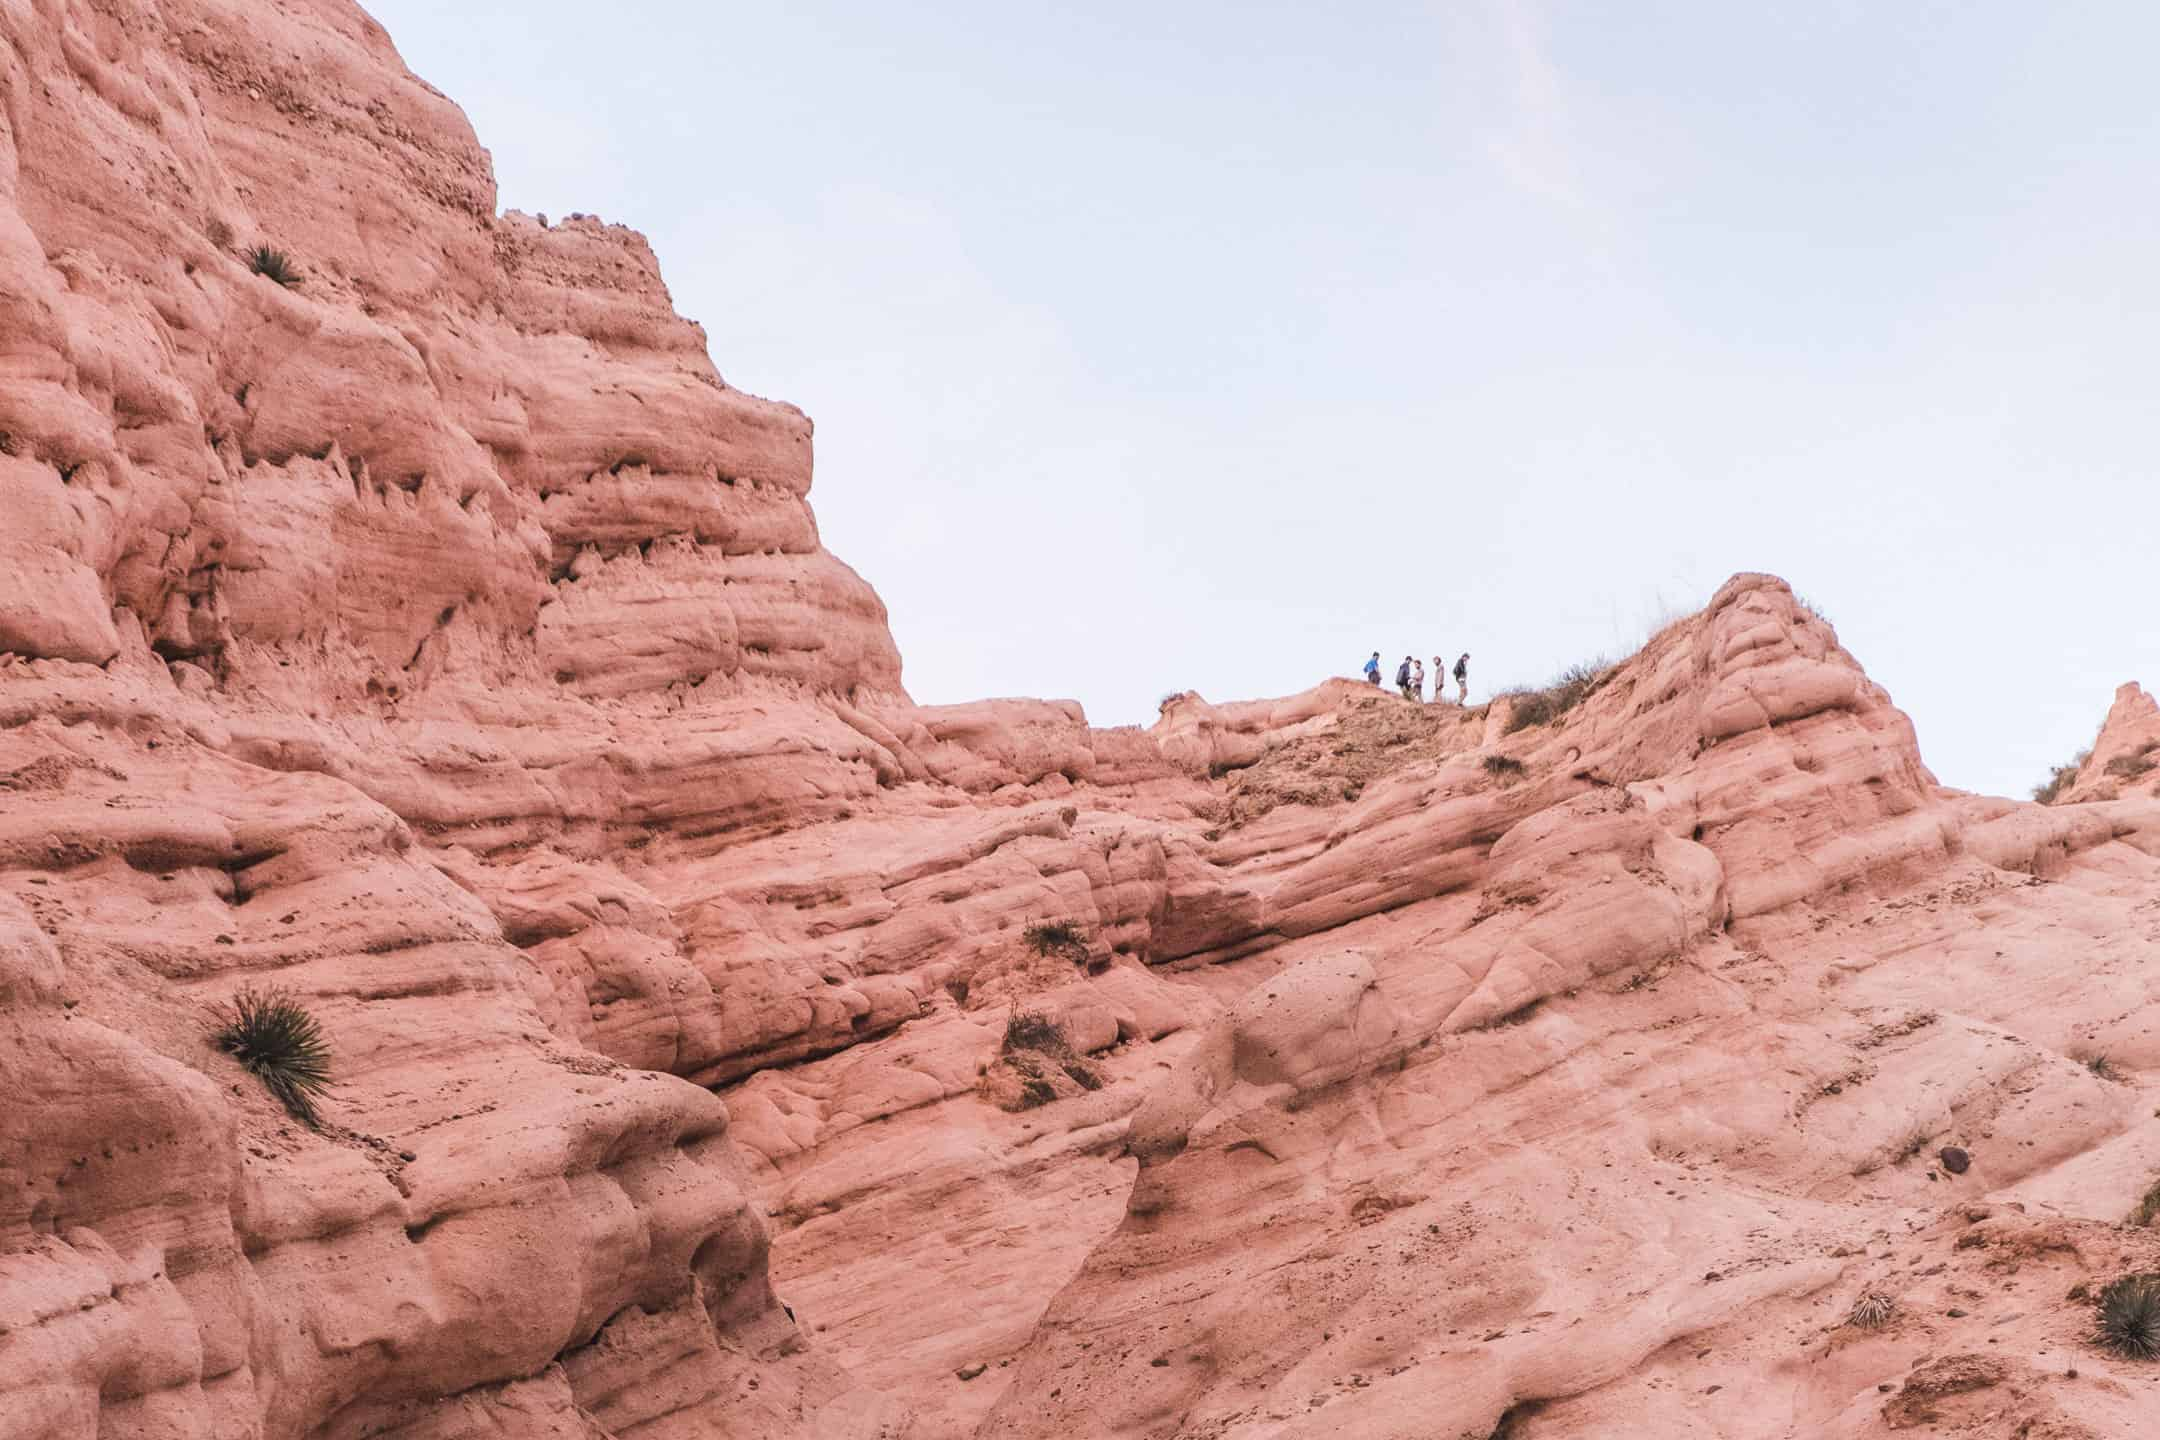 Hiking Red Rock Canyon Trail in Whiting Ranch Wilderness Park | Hike through Whiting Ranch Wilderness Park to find this unique red sandstone canyon that's right here in Southern California | Beautiful hikes in Orange County